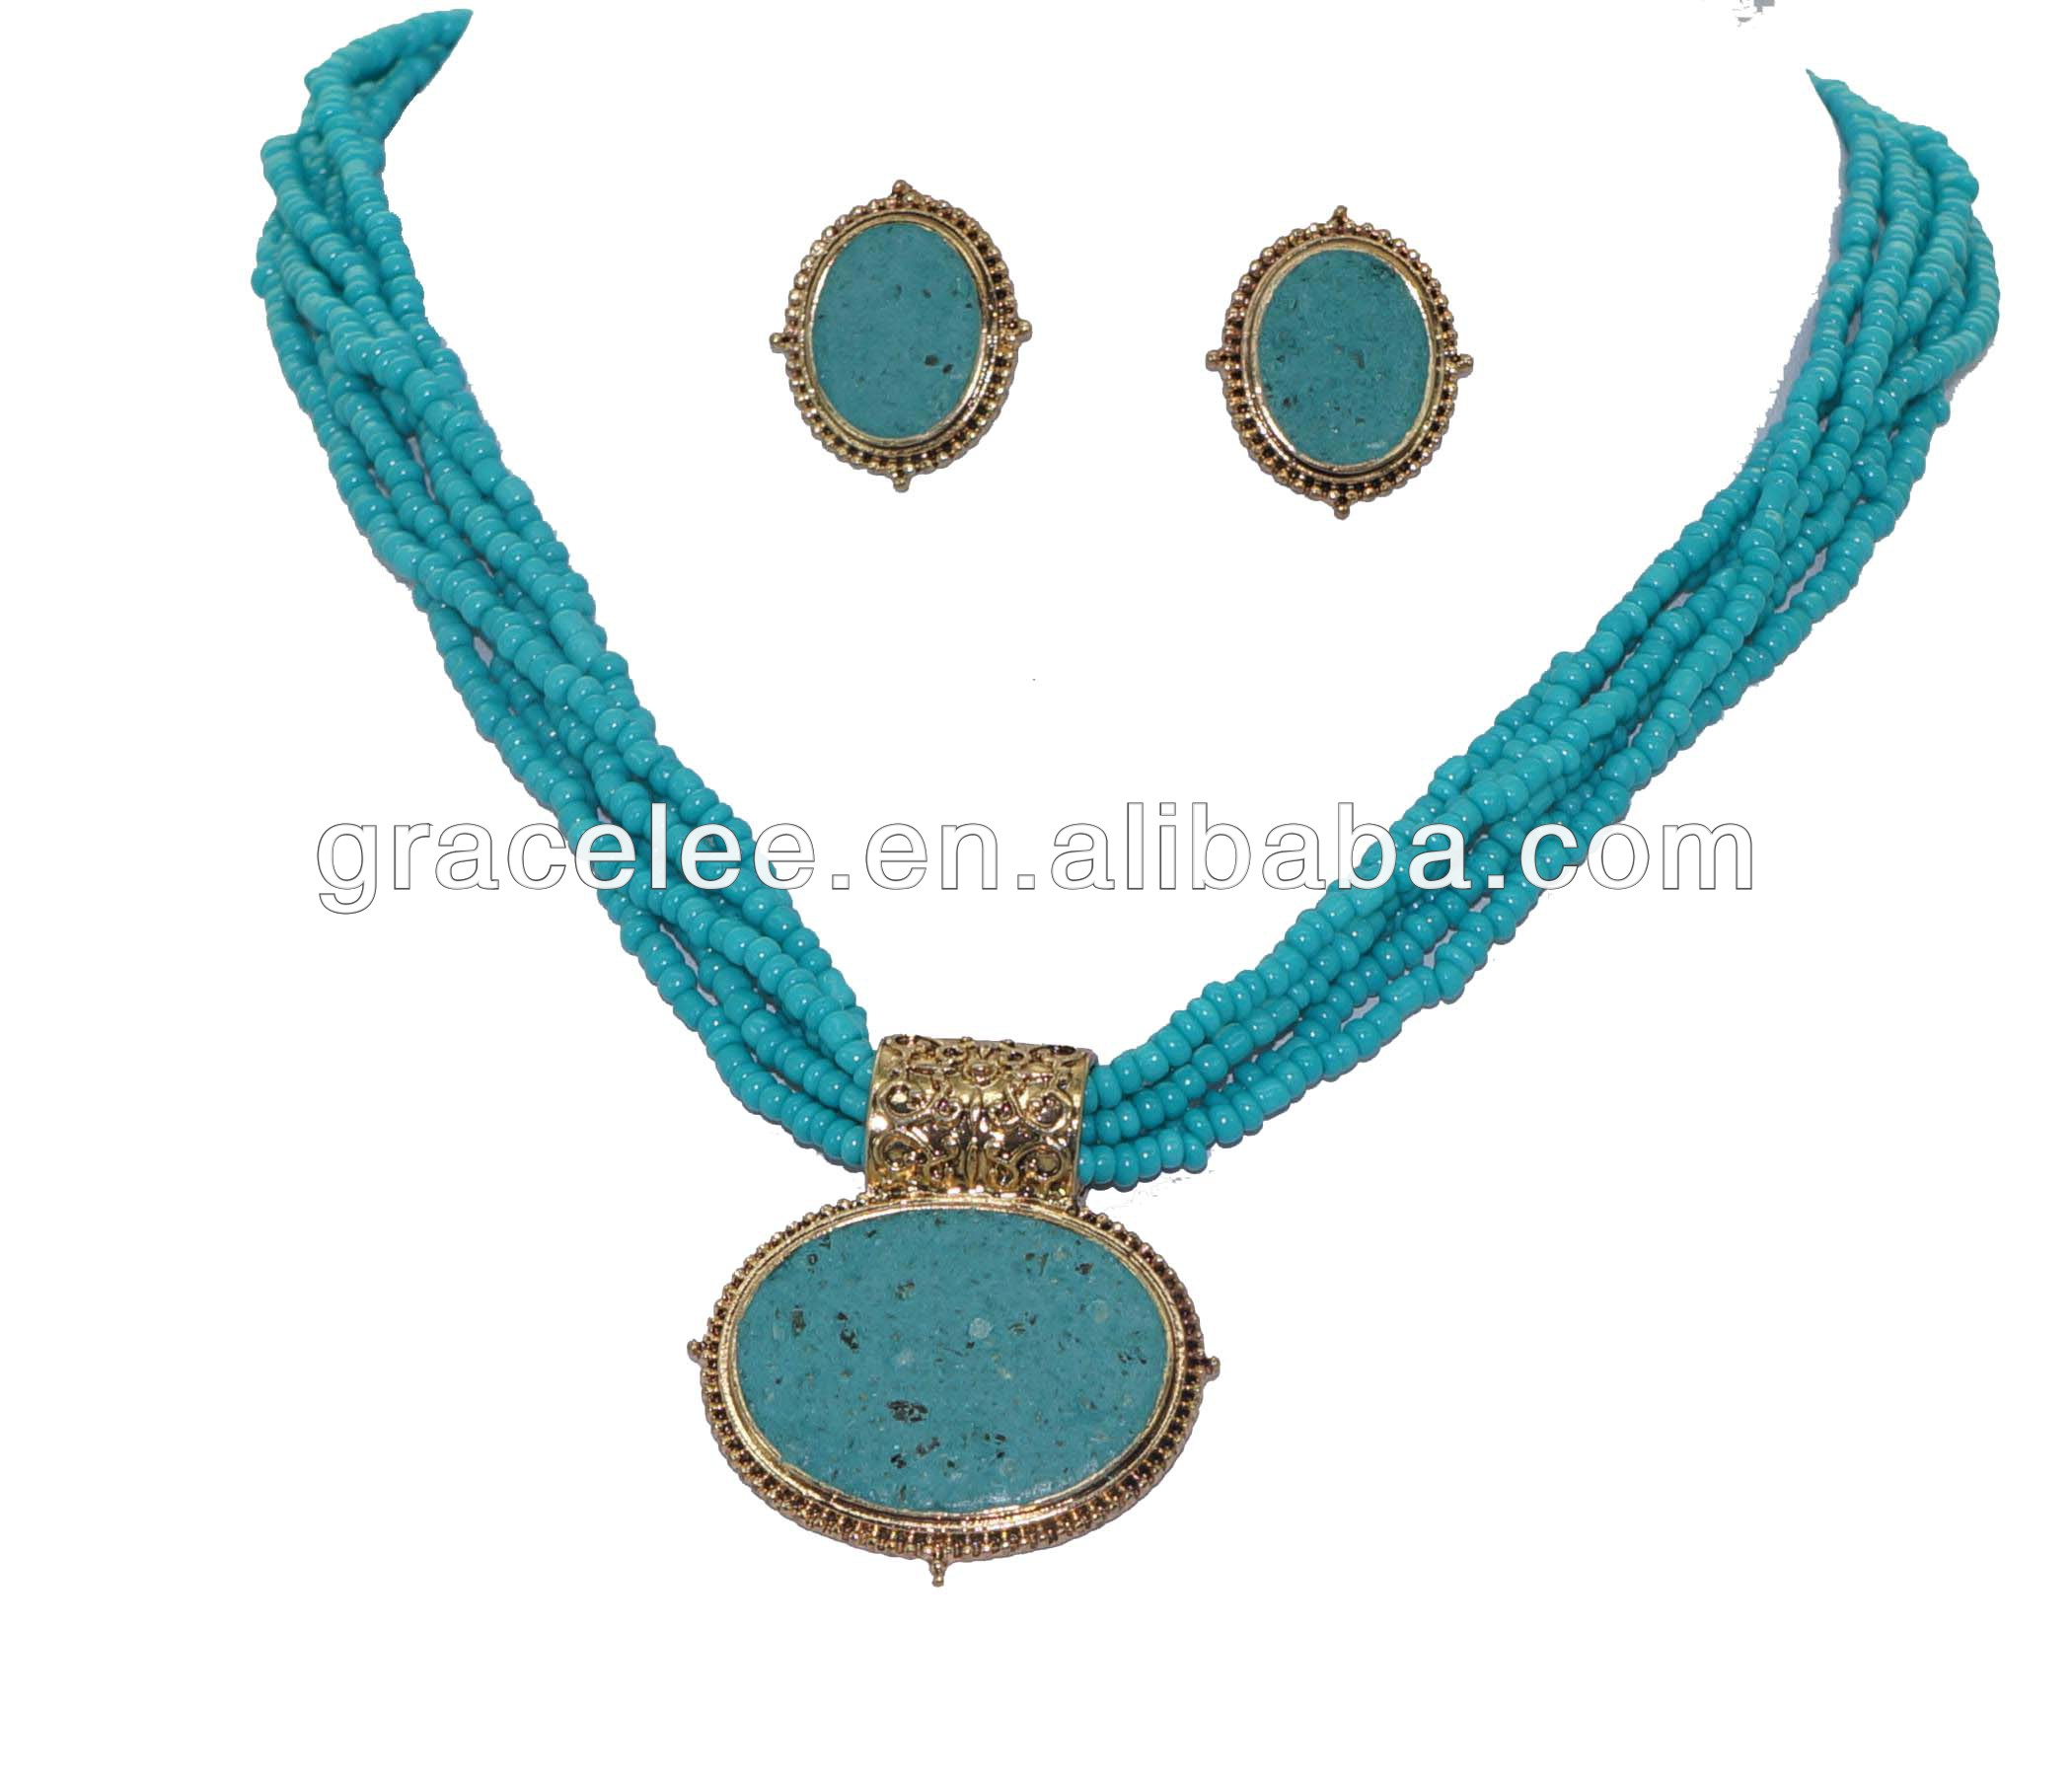 Turquoise epoxy seed bead necklace set